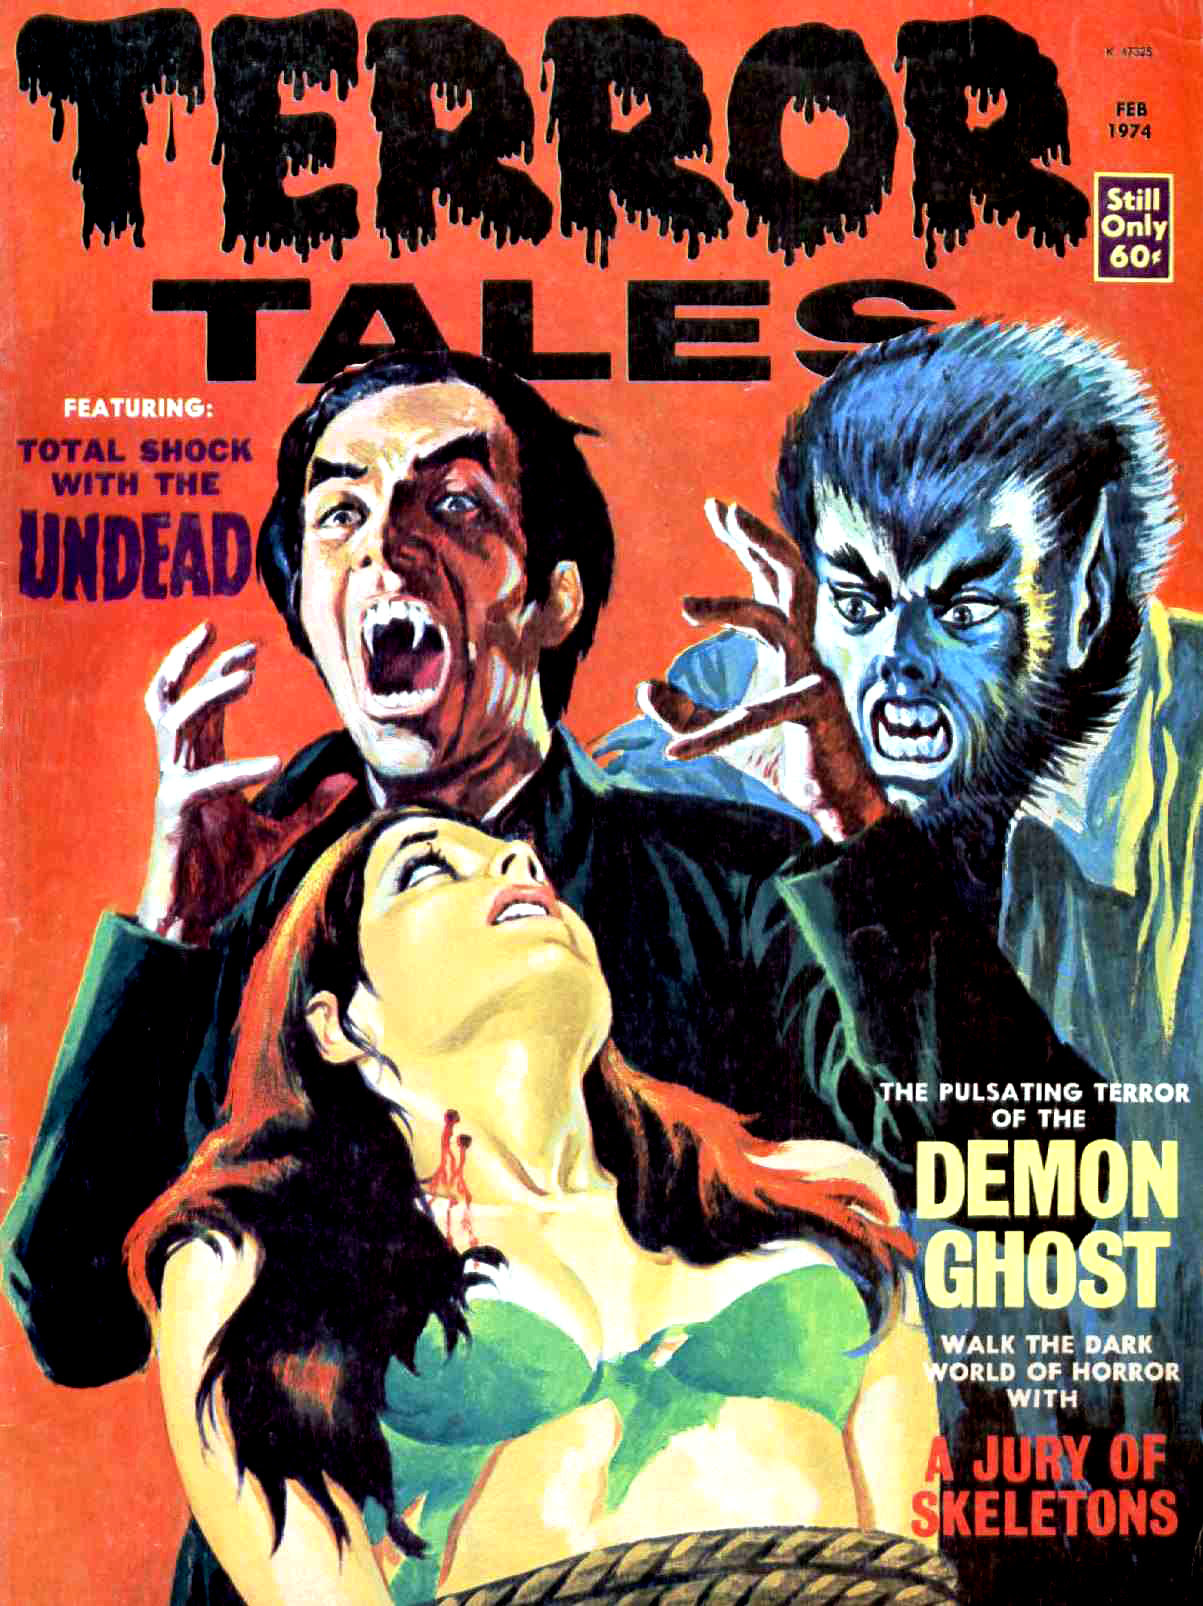 Terror Tales Vol. 06 #1 (Eerie Publications, 1974)